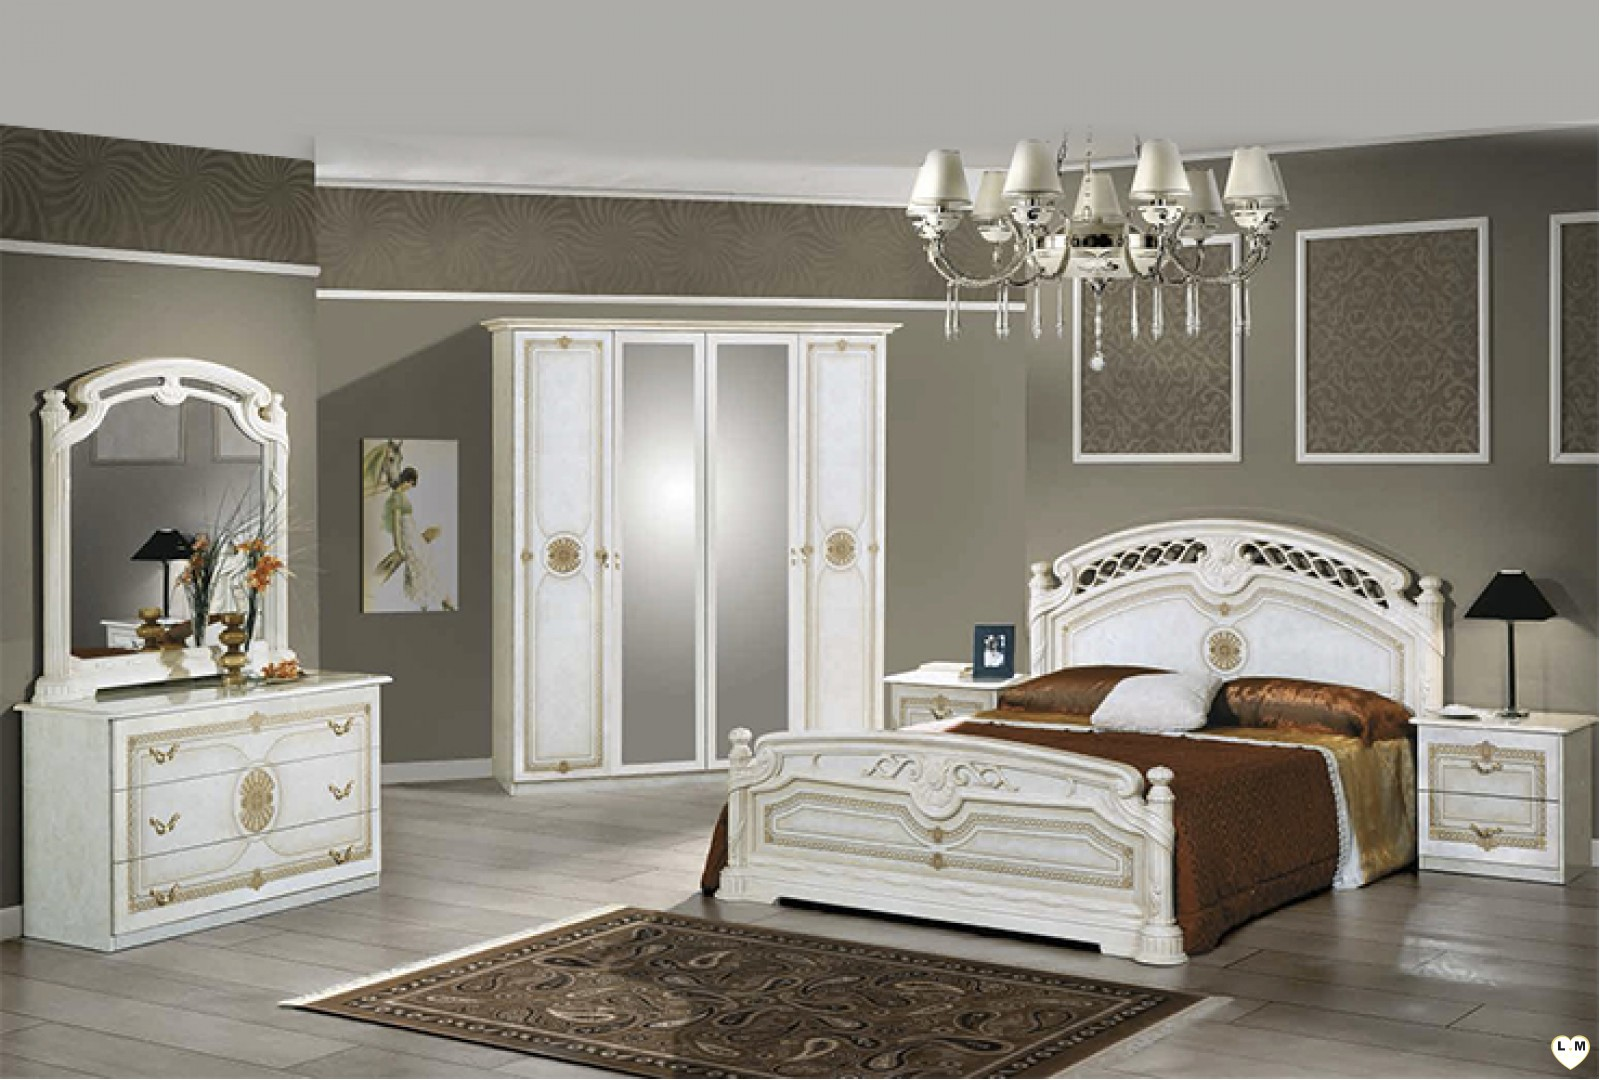 janeiro laque blanc et dore ensemble chambre a coucher lignemeuble com. Black Bedroom Furniture Sets. Home Design Ideas